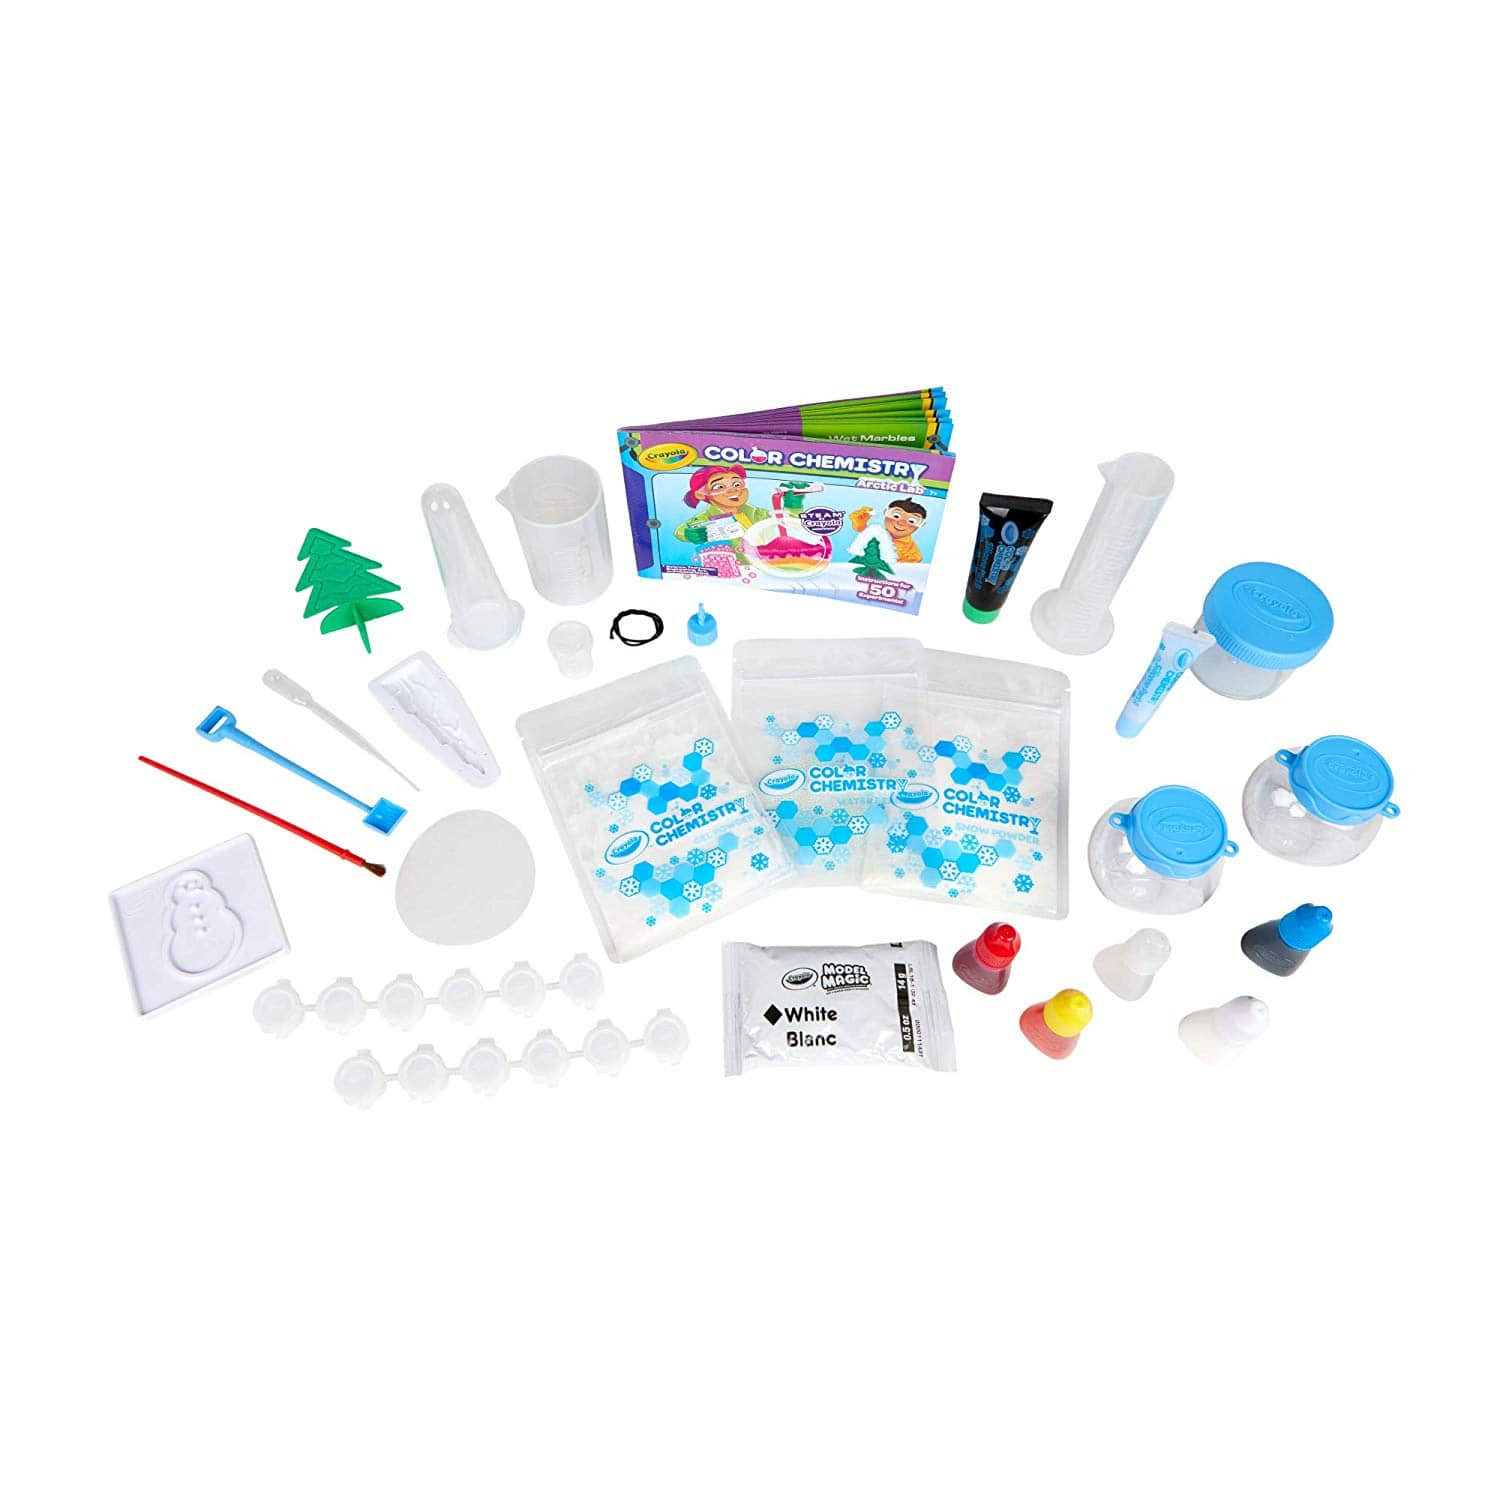 Crayola Color Chemistry Arctic Lab Set $15 + Free store pickup at Walmart or FS w/ Prime